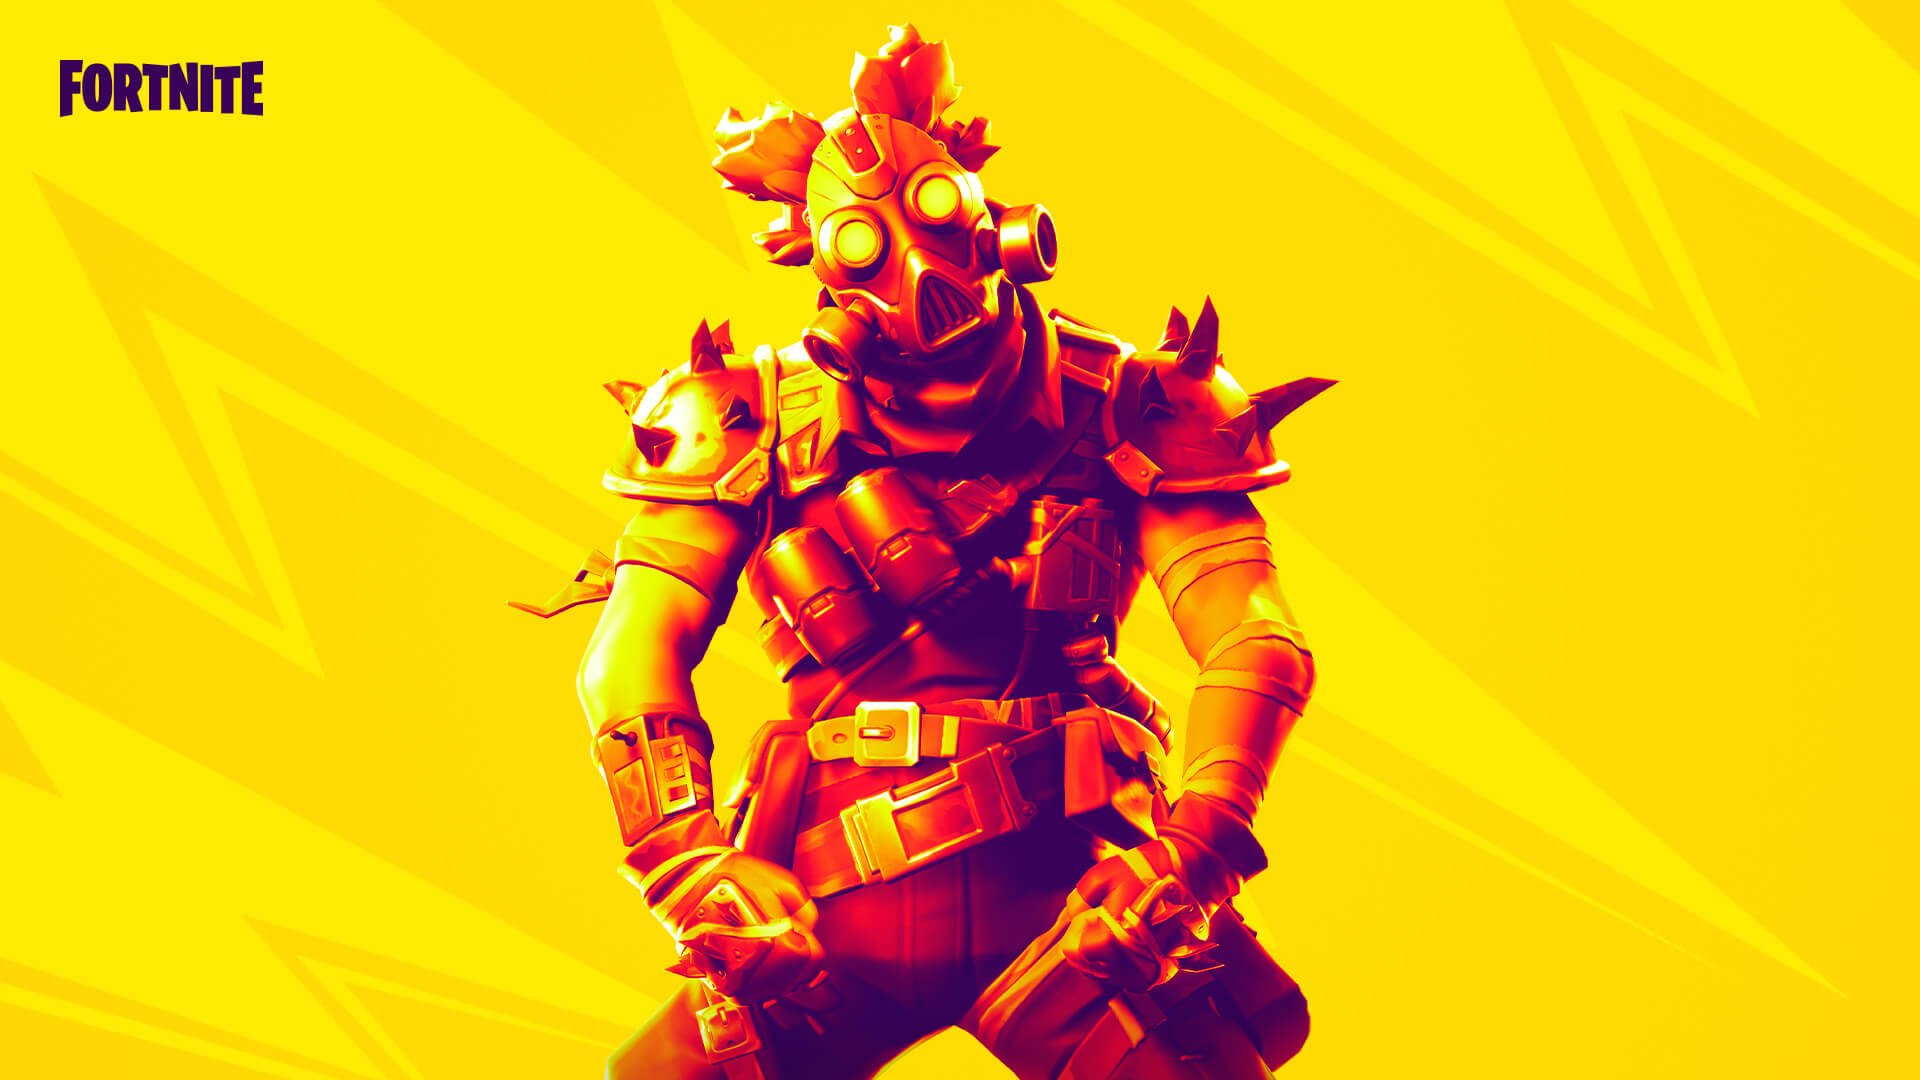 Fortnite Xbox An Unexpected Error Site Www.epicgames.com Wild Wednesdays Chapter 2 Season 4 Official Rules